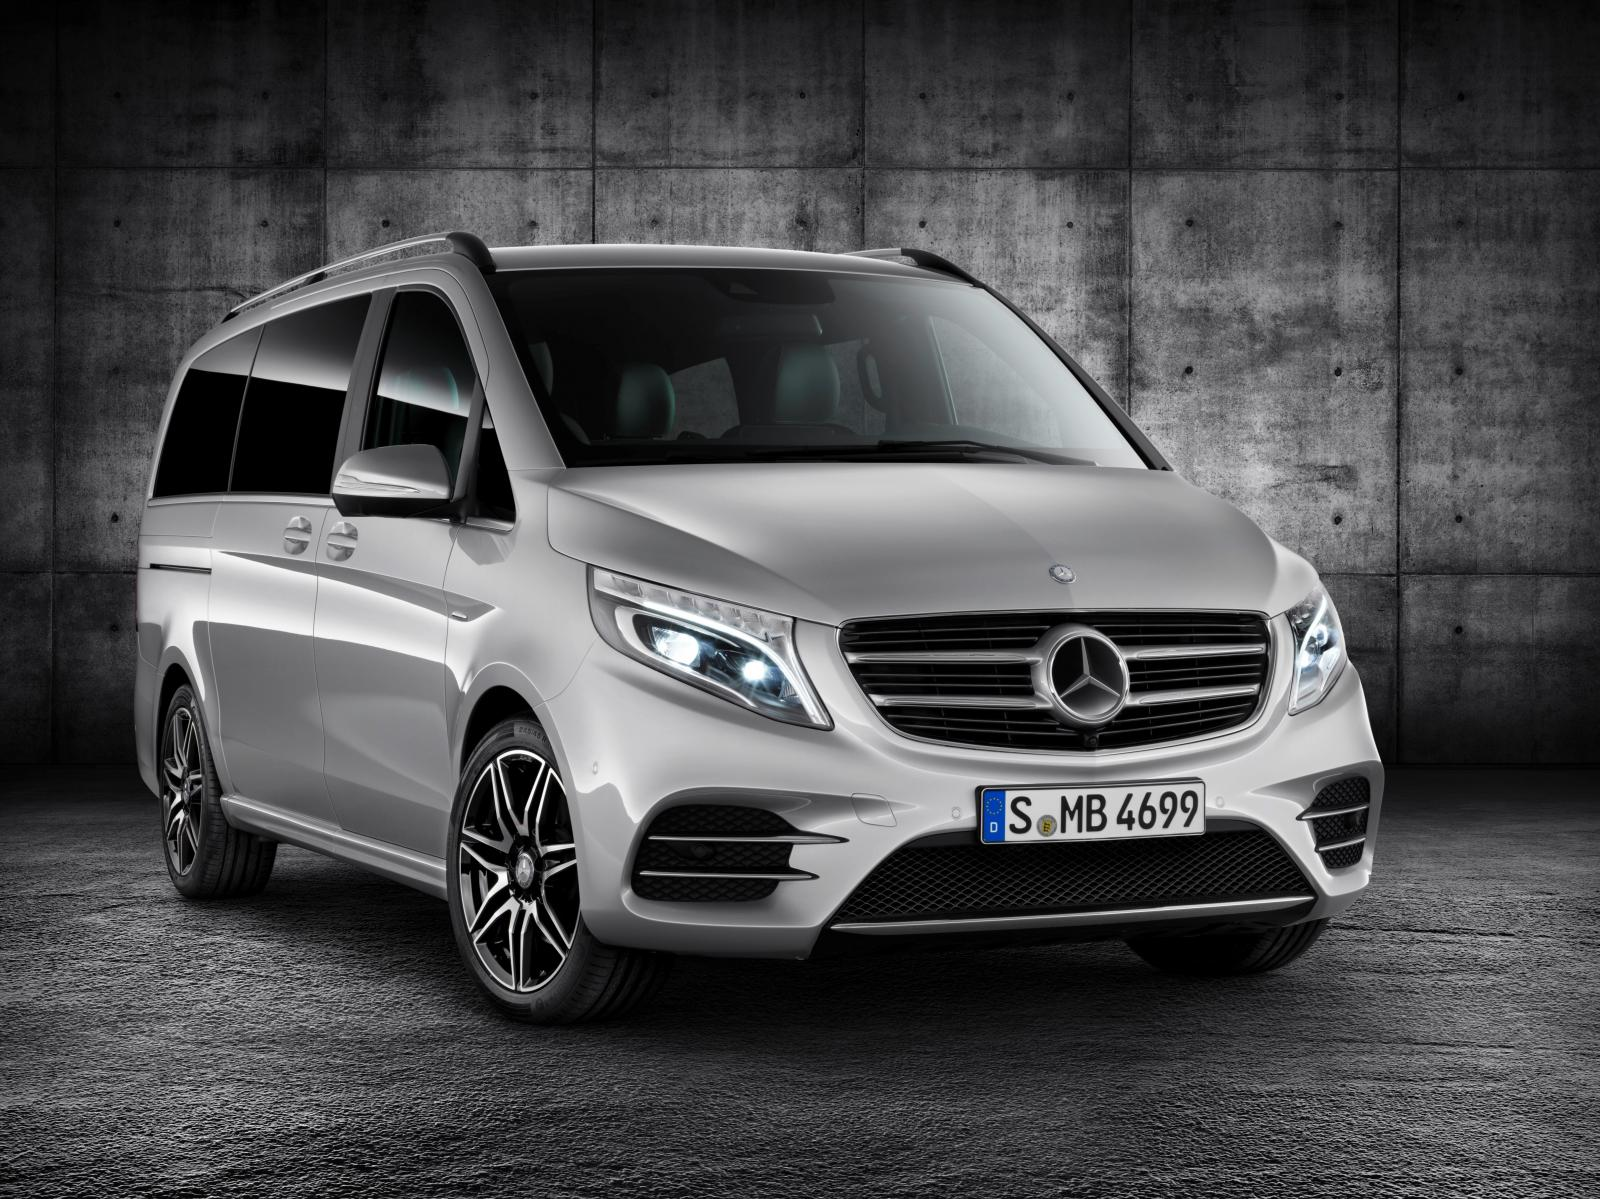 official 2016 mercedes benz v class amg line gtspirit. Black Bedroom Furniture Sets. Home Design Ideas